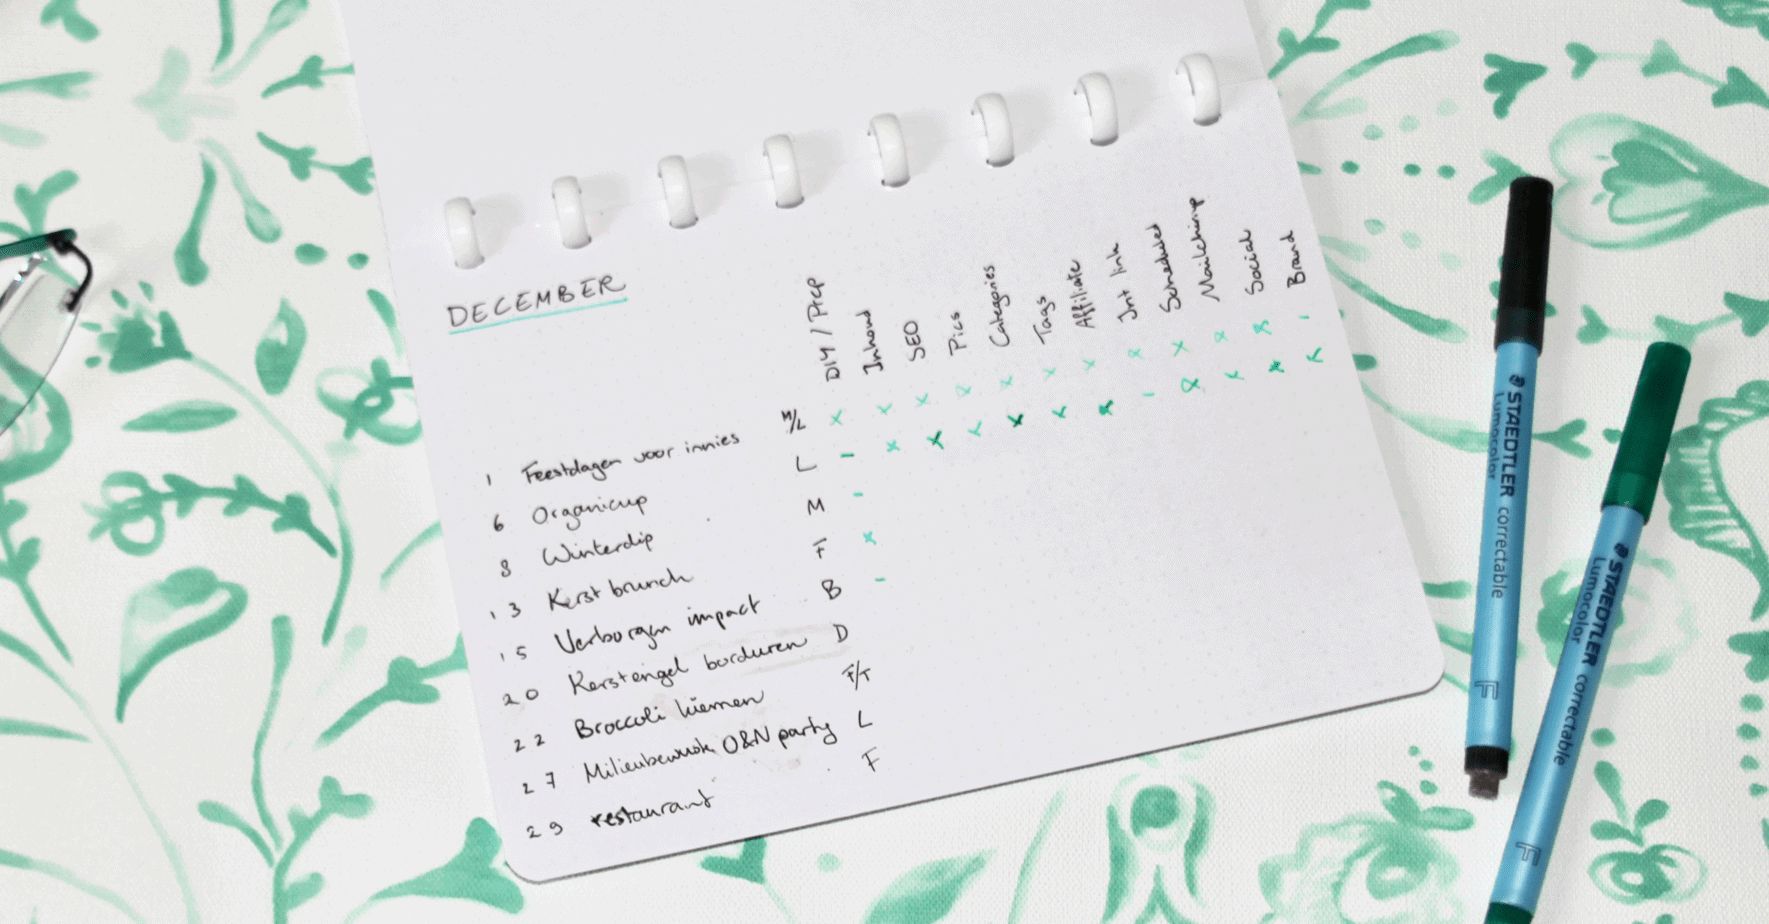 GreenBook Blog planner: blog post checklist